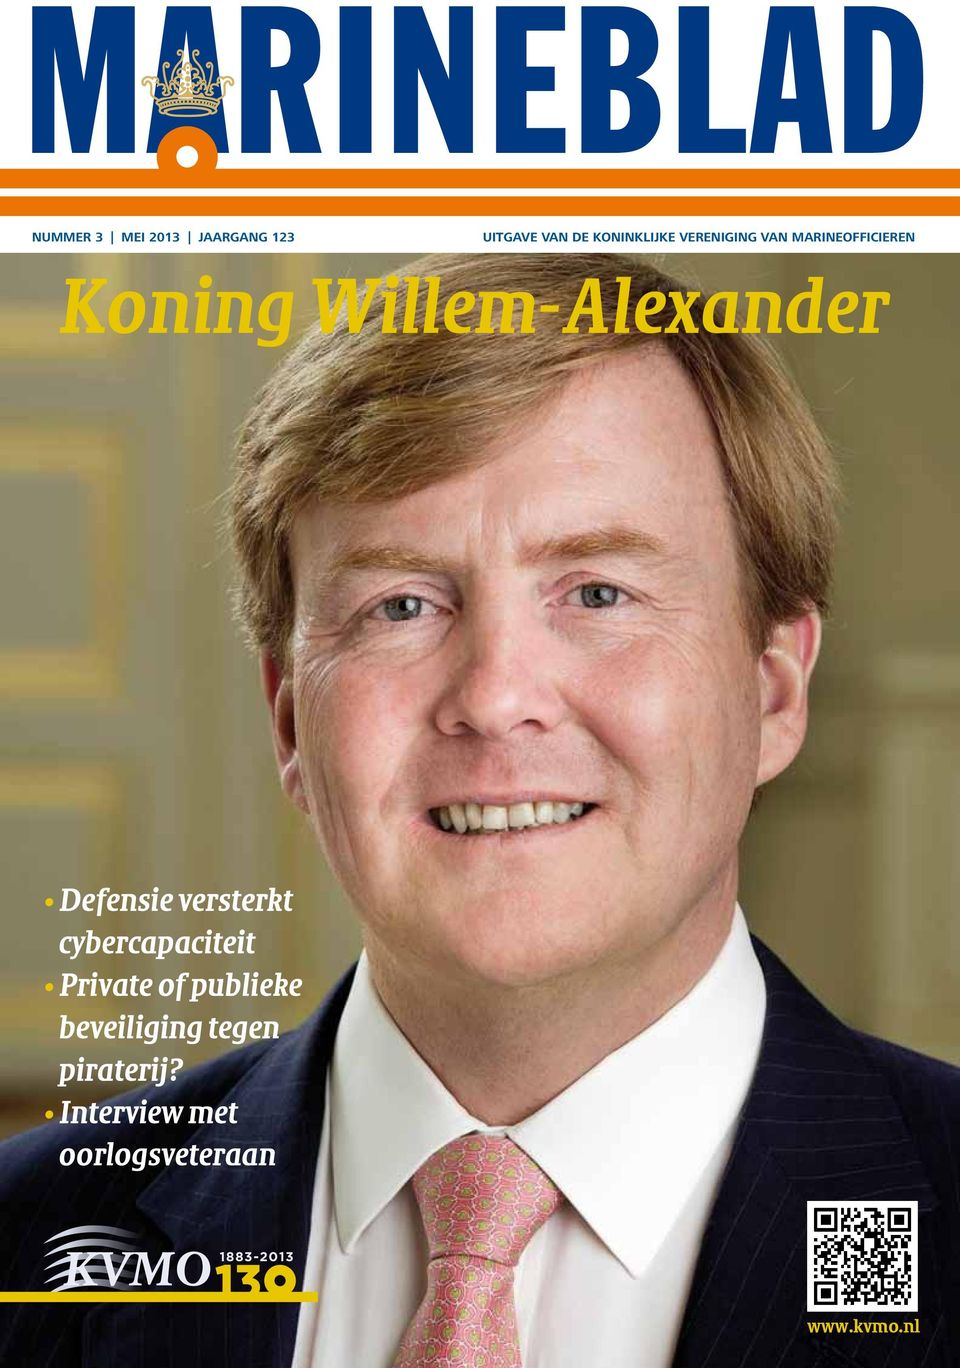 Willem-Alexander Defensie versterkt cybercapaciteit Private of